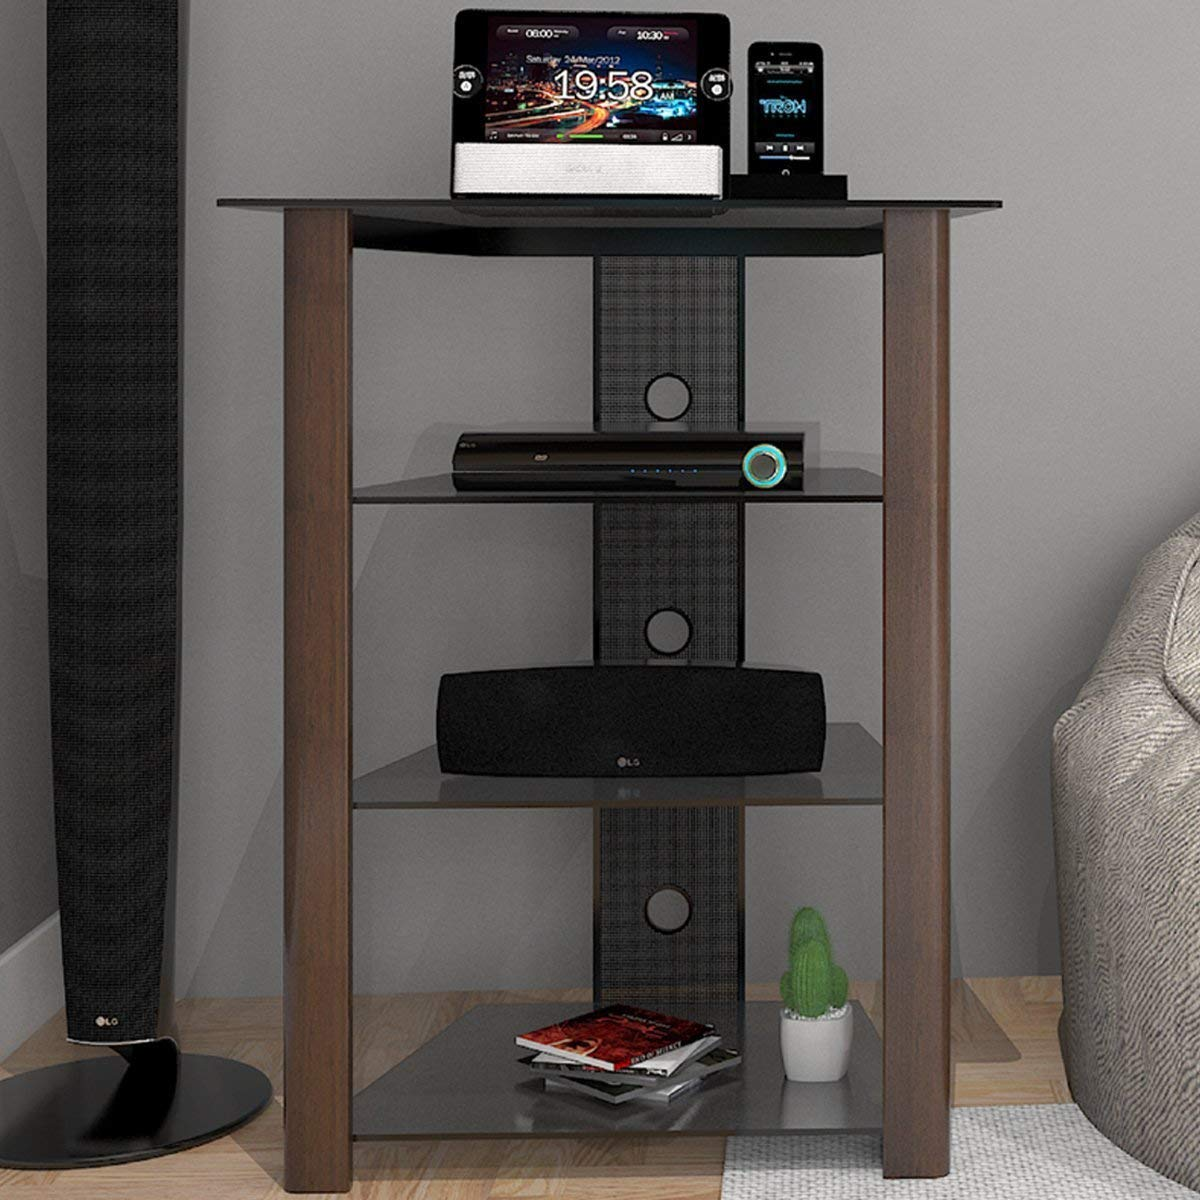 Ryan Rove Ashton Multi-Level Media Component Stand - Living Room Furniture, Home Theater System, Entertainment Center, Console Shelf and Storage Rack - Cable Management, Glass Shelves - Wood Espresso by Ryan Rove